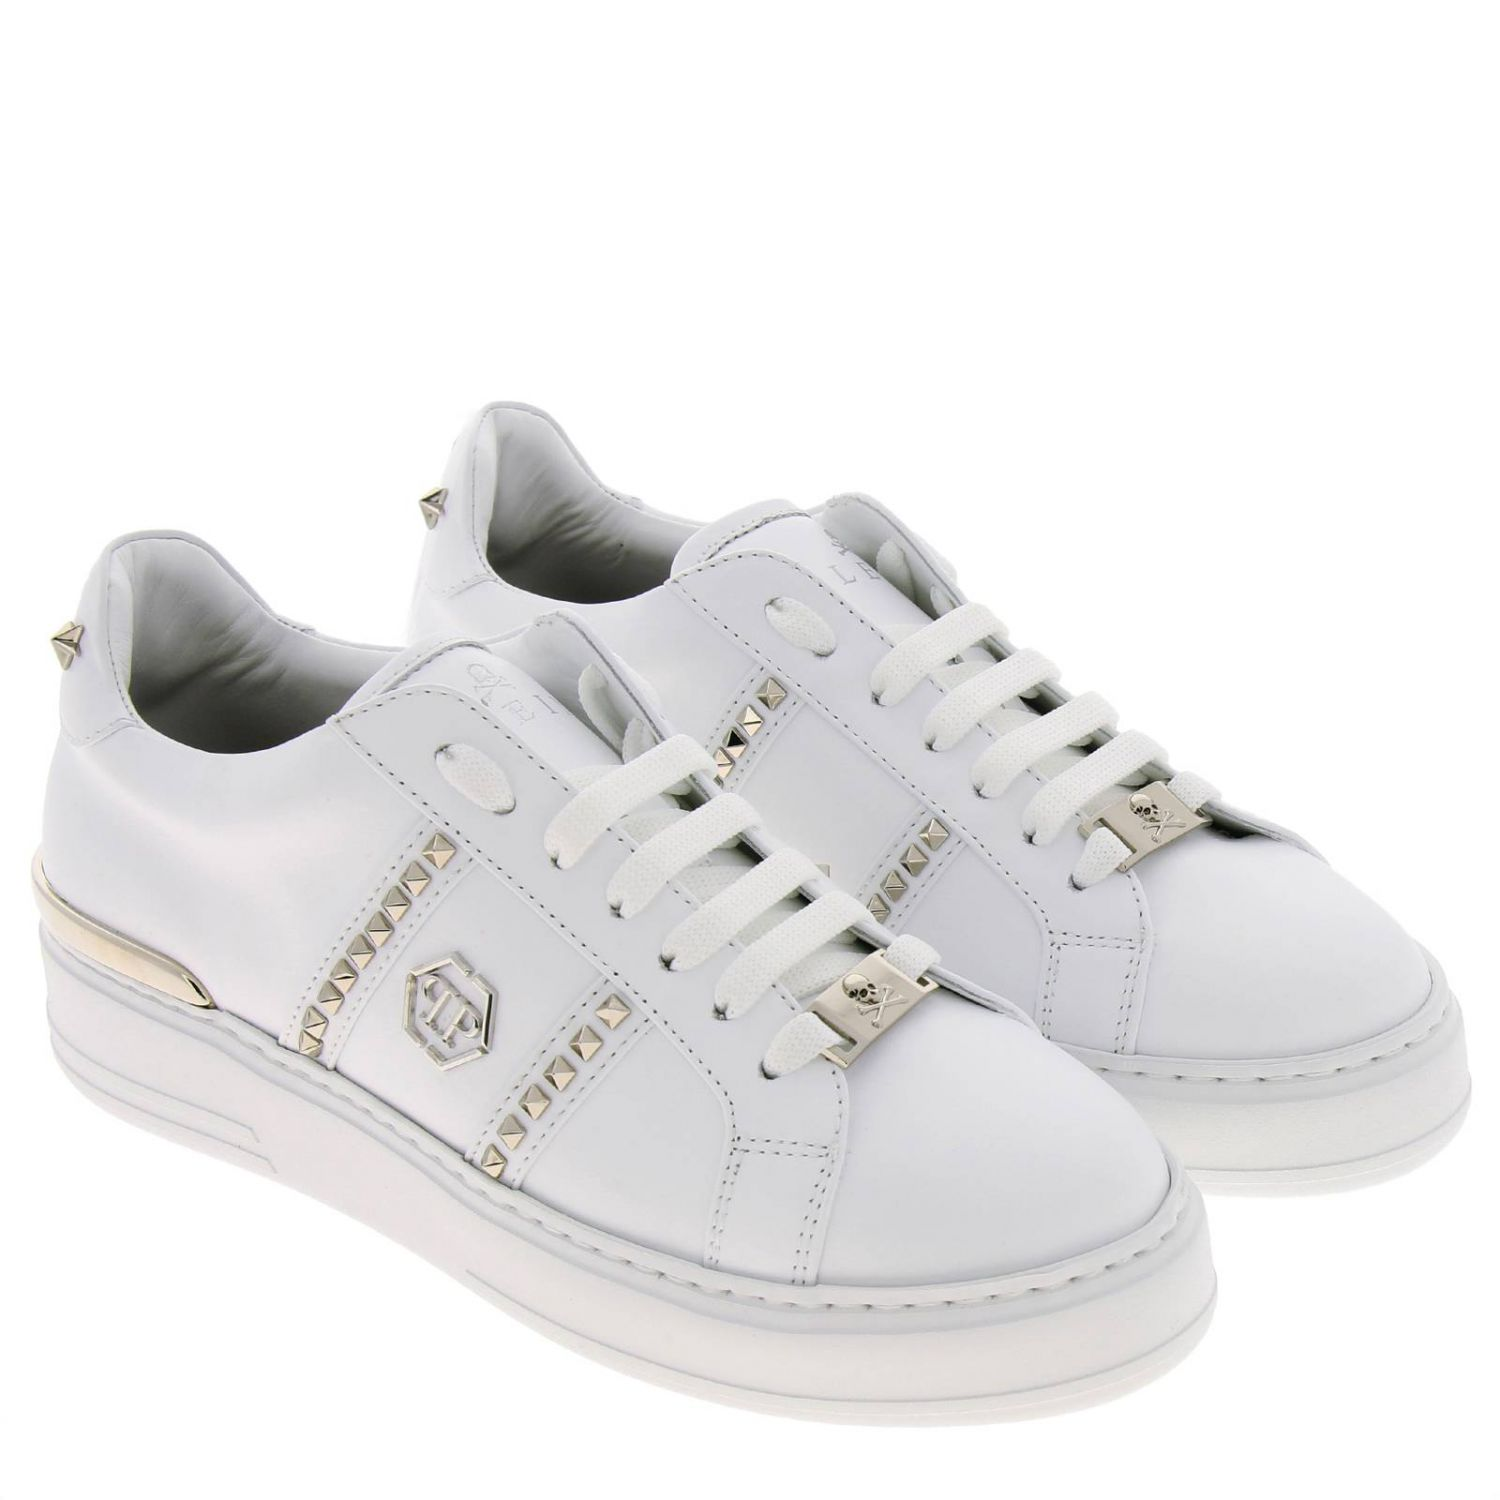 Shoes women Philipp Plein white 2